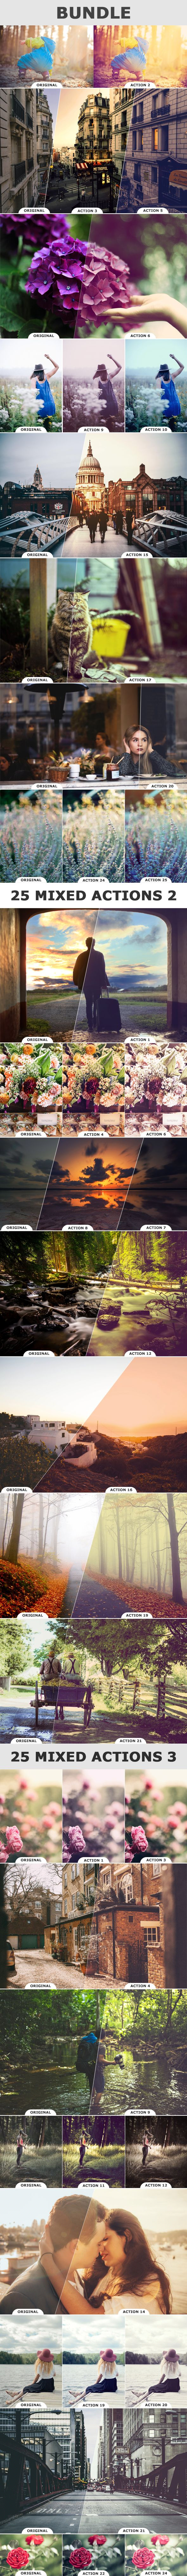 75 Mixed Actions BUNLDE - Photo Effects Actions